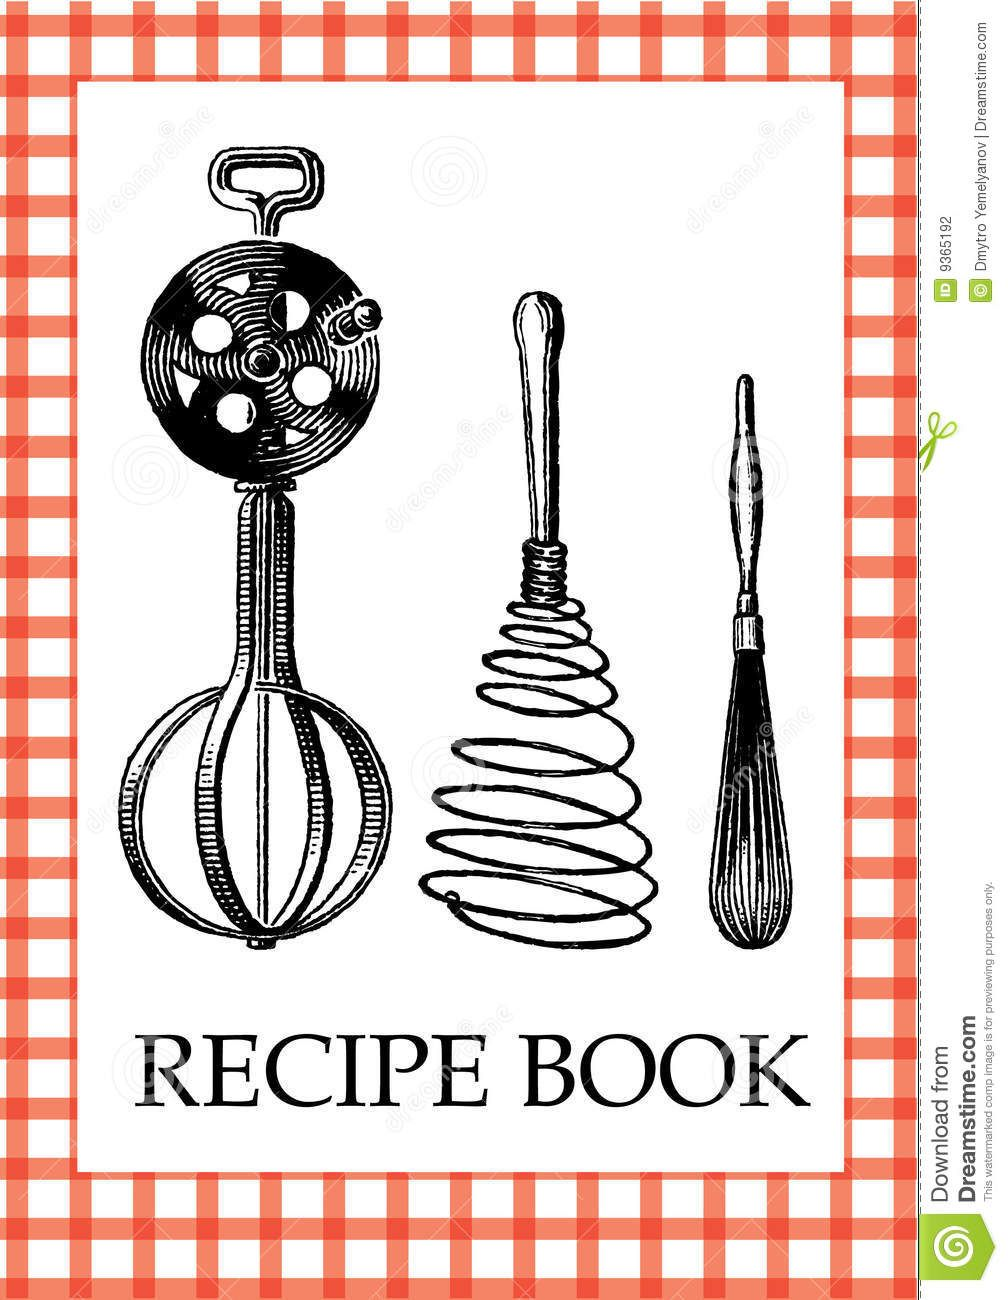 photograph about Recipe Book Cover Printable identified as Recipe E-book Clroom treasure Plans Recipe reserve addresses